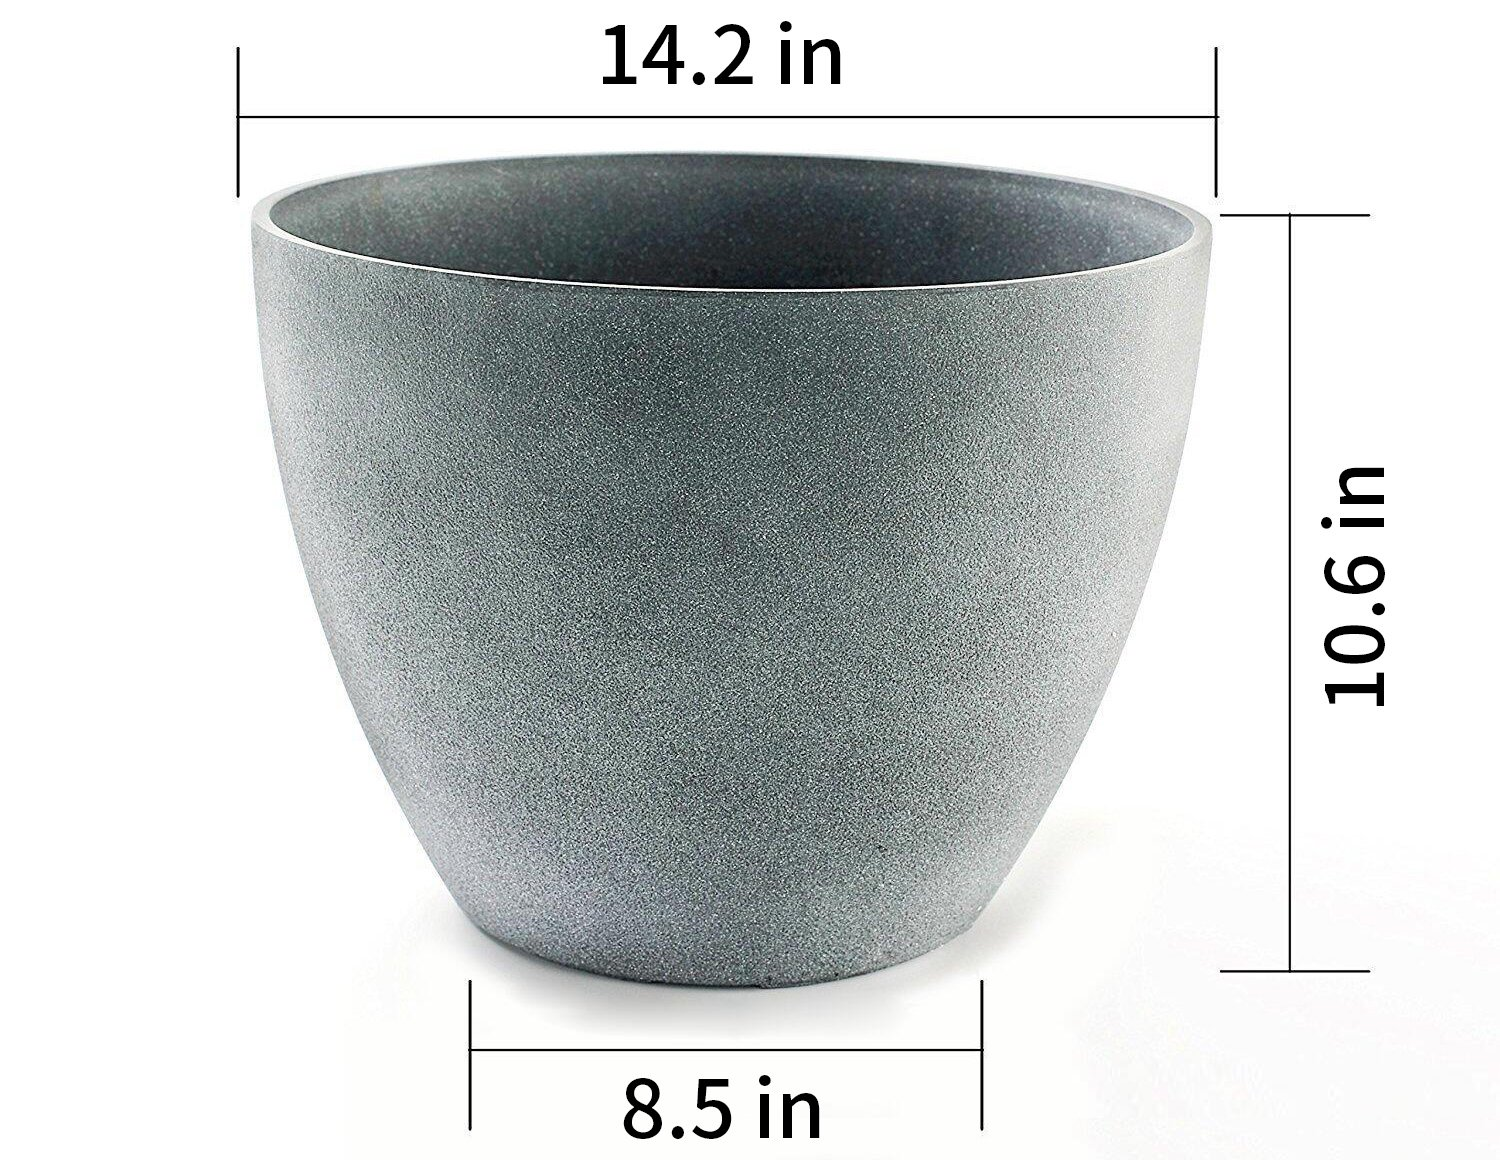 Flower Pot Large 14.2'' Garden Planters Outdoor Indoor, Unbreakable Resin Plant Containers with Drain Hole, Grey by LA JOLIE MUSE